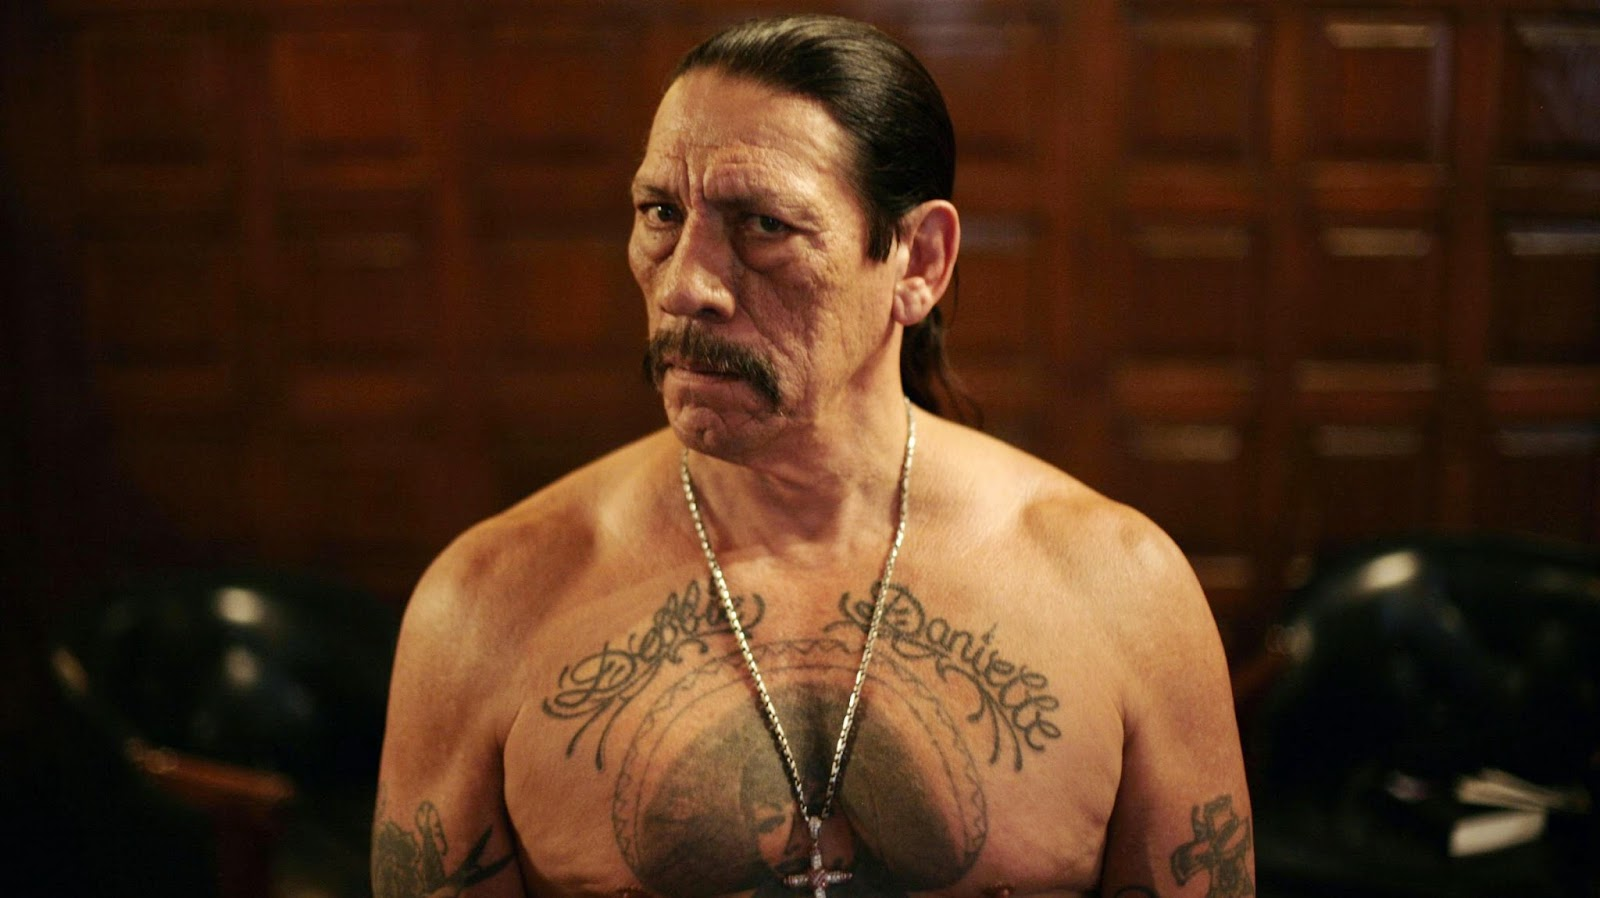 Watch Danny Trejo Audition for 'Star Wars' as Princess Leia